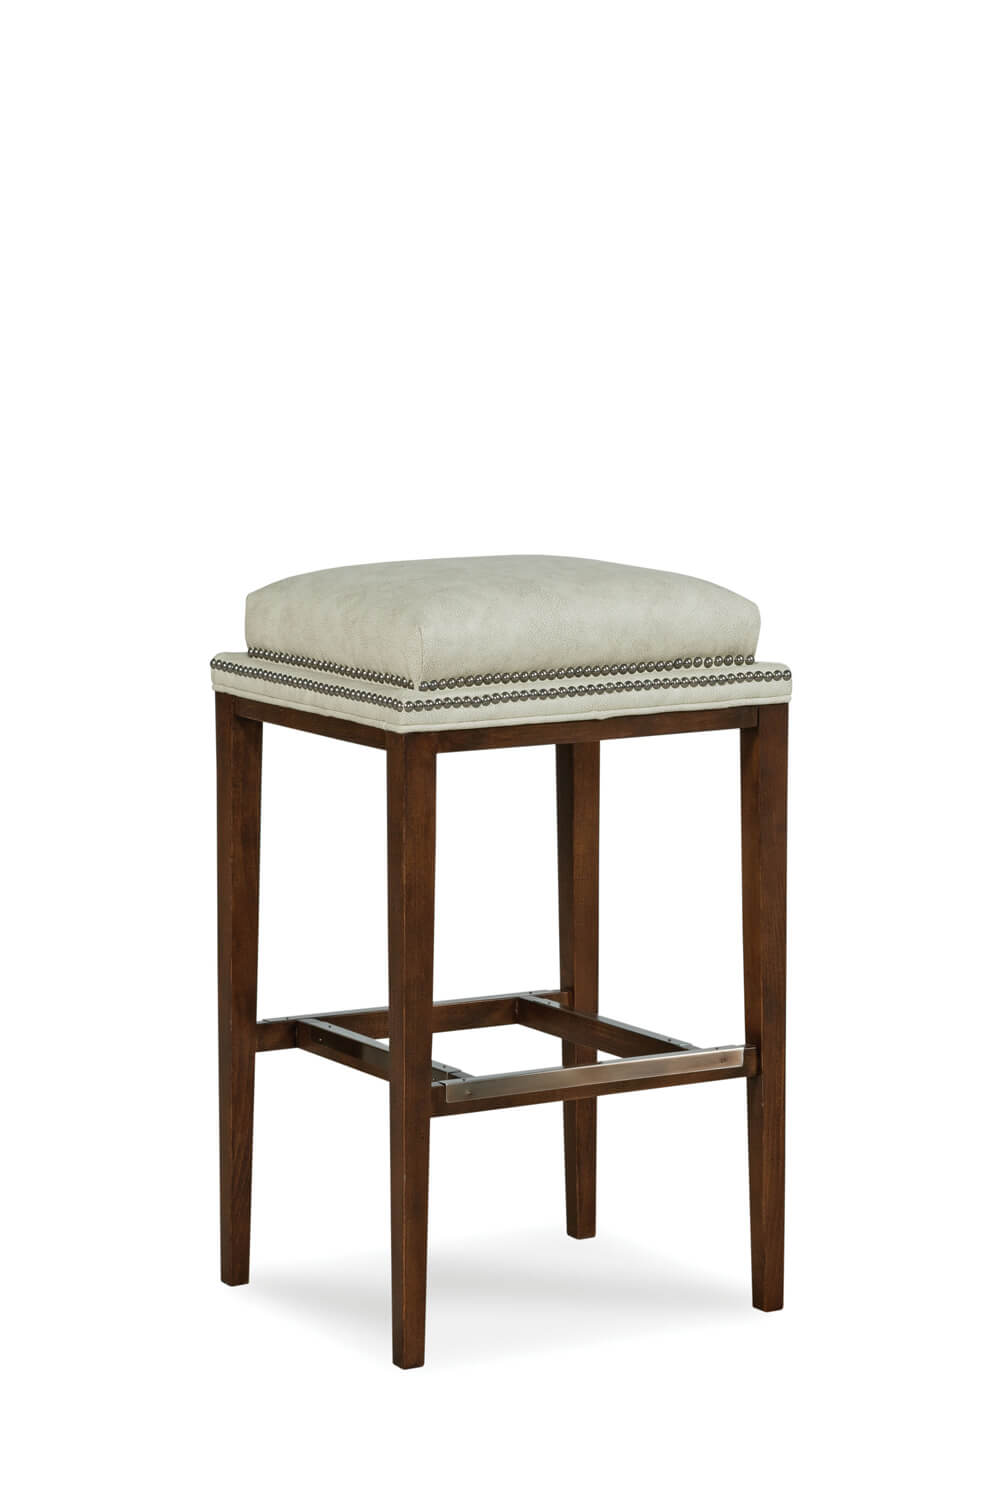 Fairfield Chair's Noah Wooden Backless Barstool